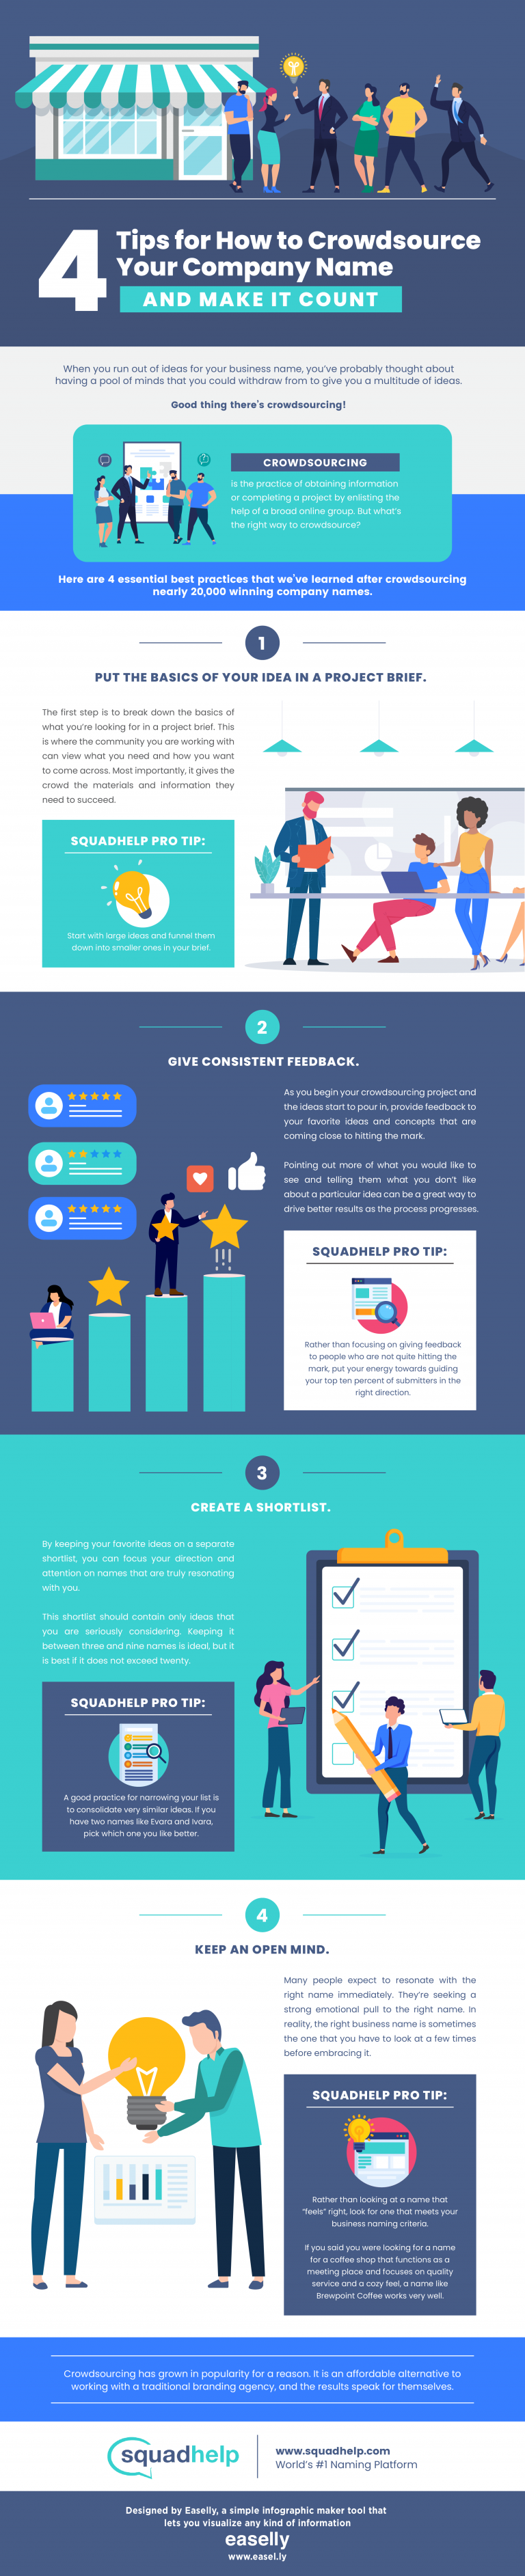 Infographic about tips on crowdsourcing your company name